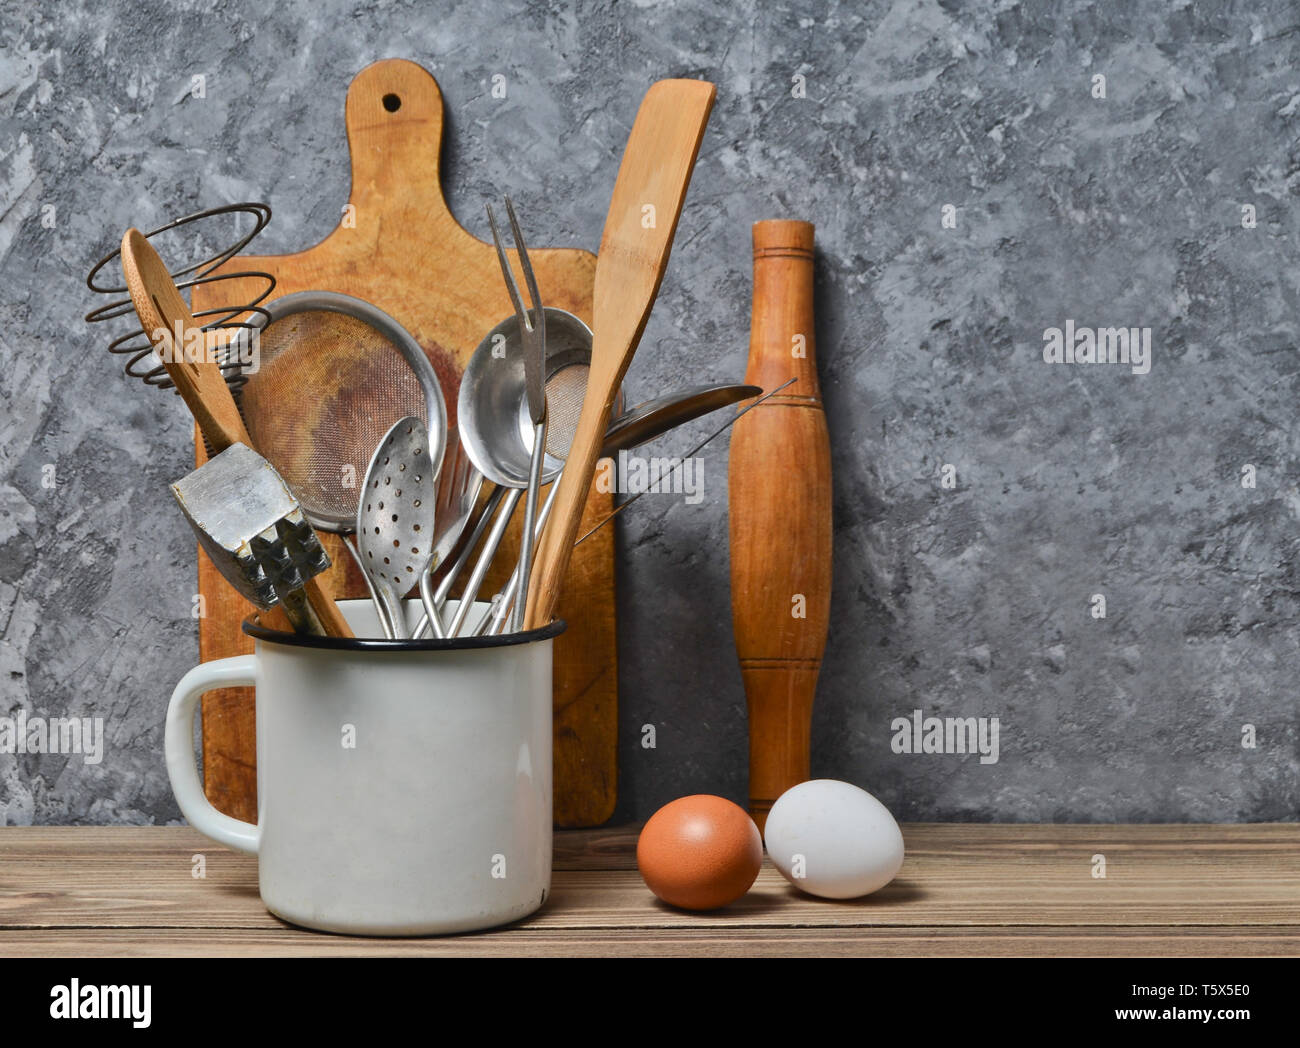 Kitchen tools for cooking on a wooden table on the background of a concrete wall.Copy space. Spoon, forks, wooden spatula, rolling pin, eggs. Stock Photo